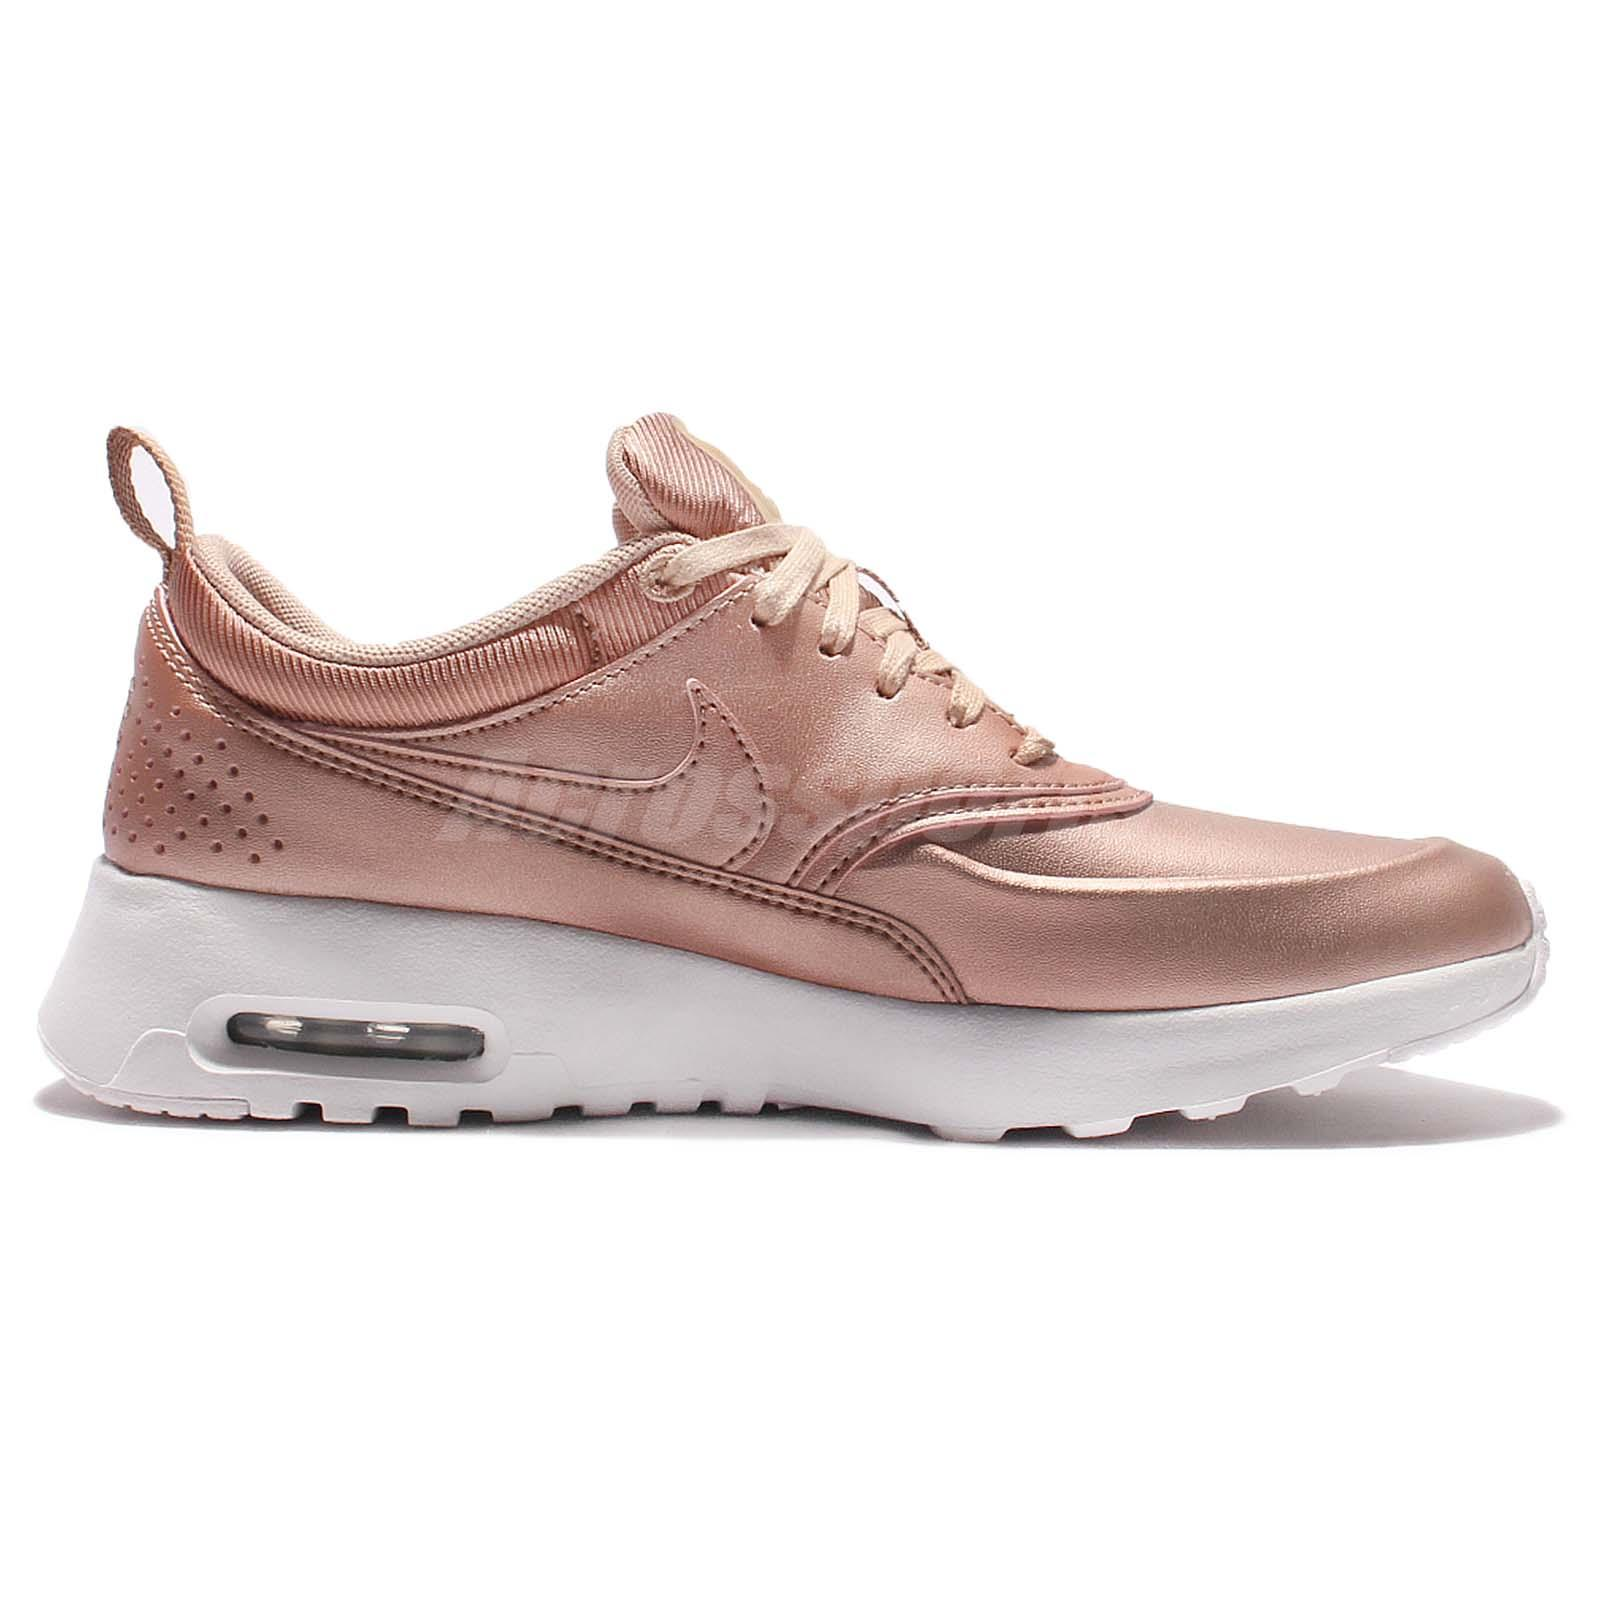 Wmns Nike Air Max Thea SE Metallic Red Bronze Womens ...